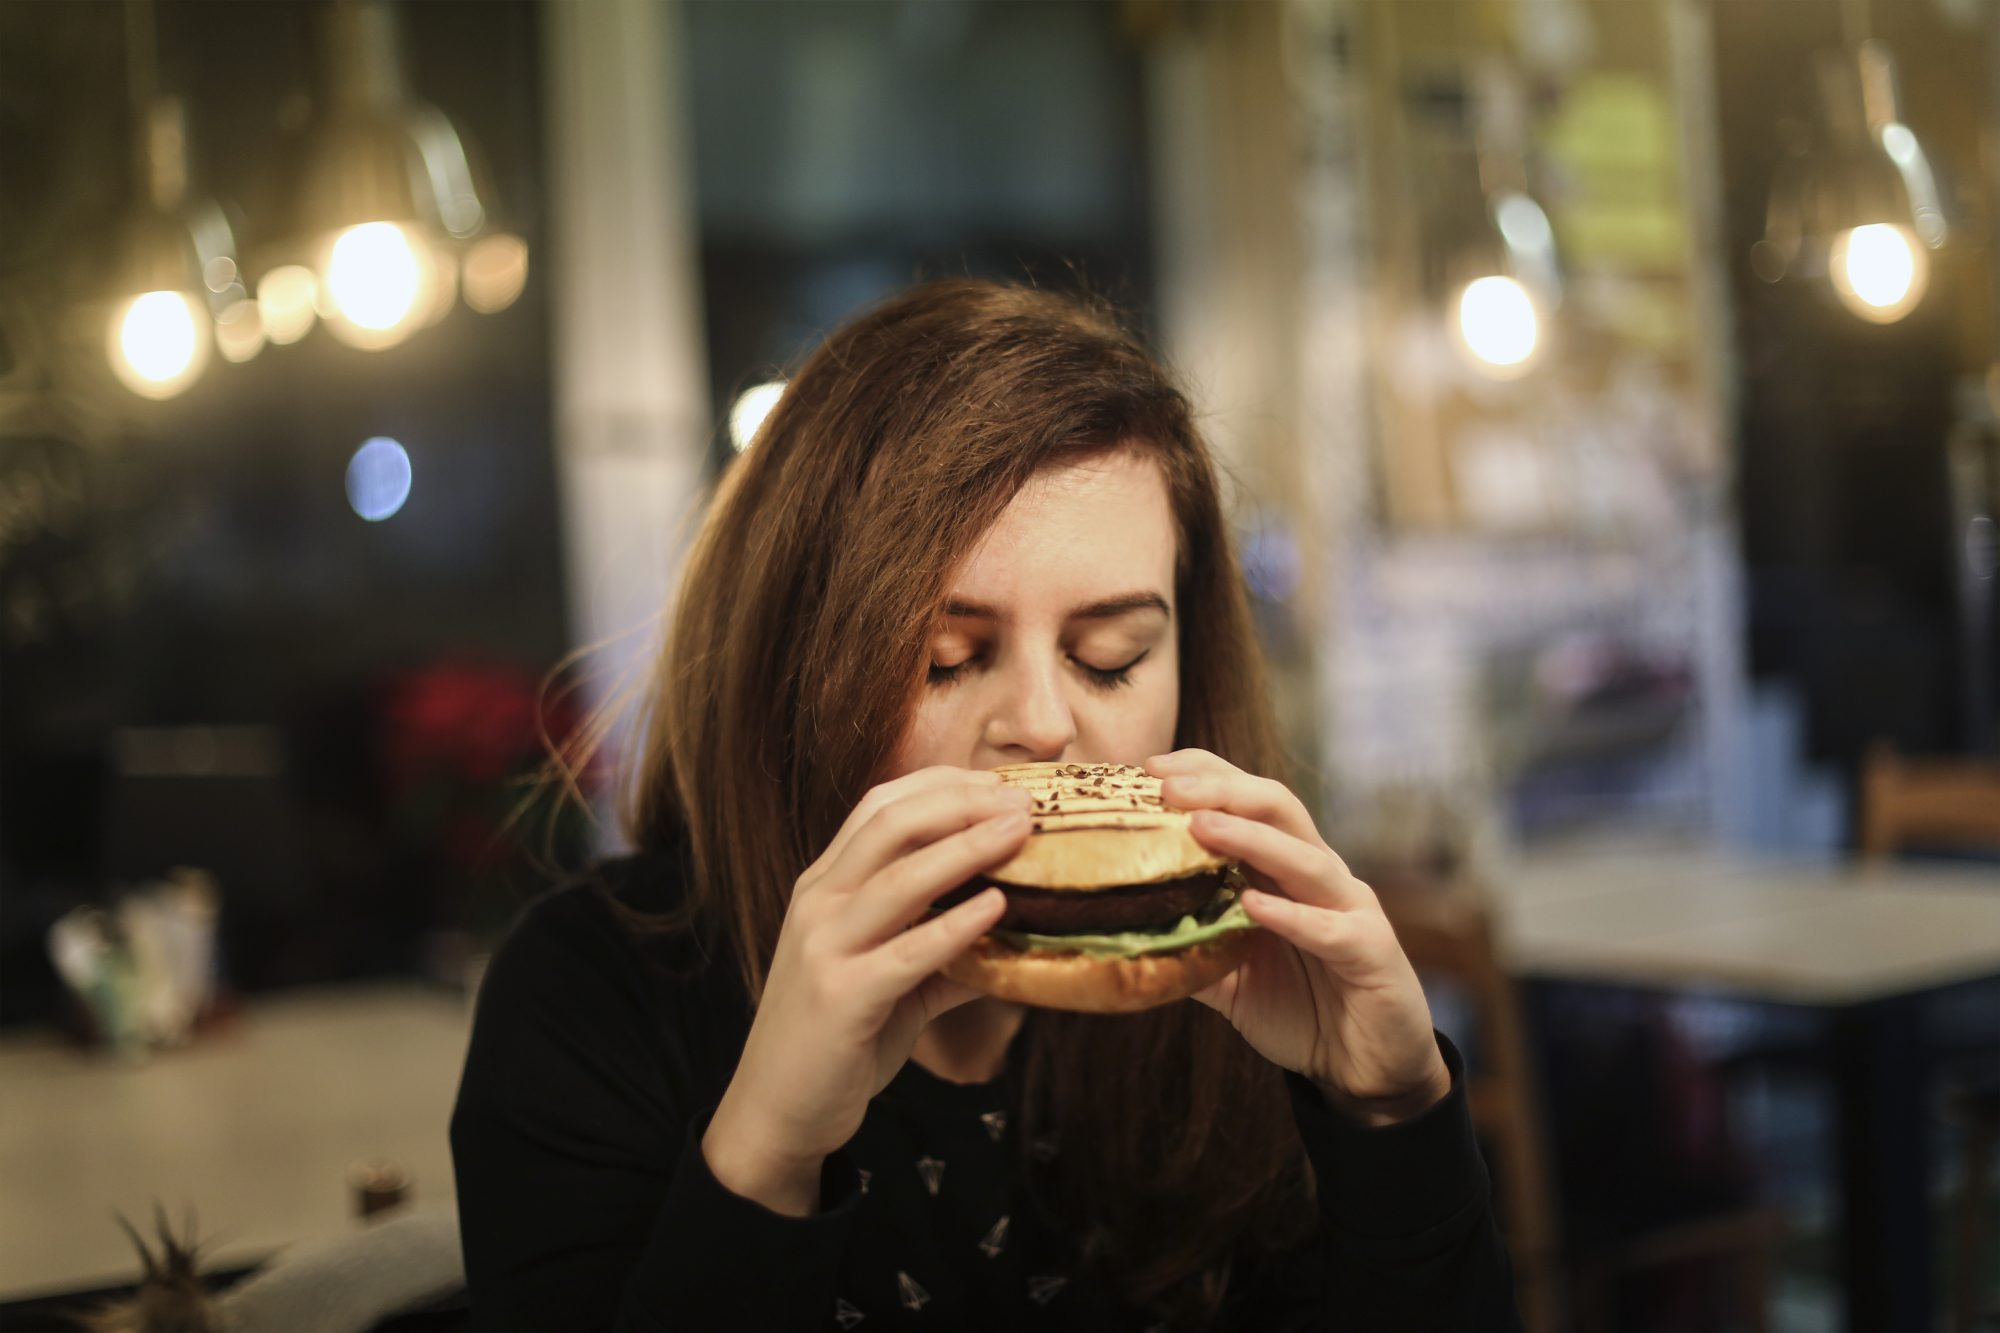 Myth: Late-night meals lead to weight gain, period